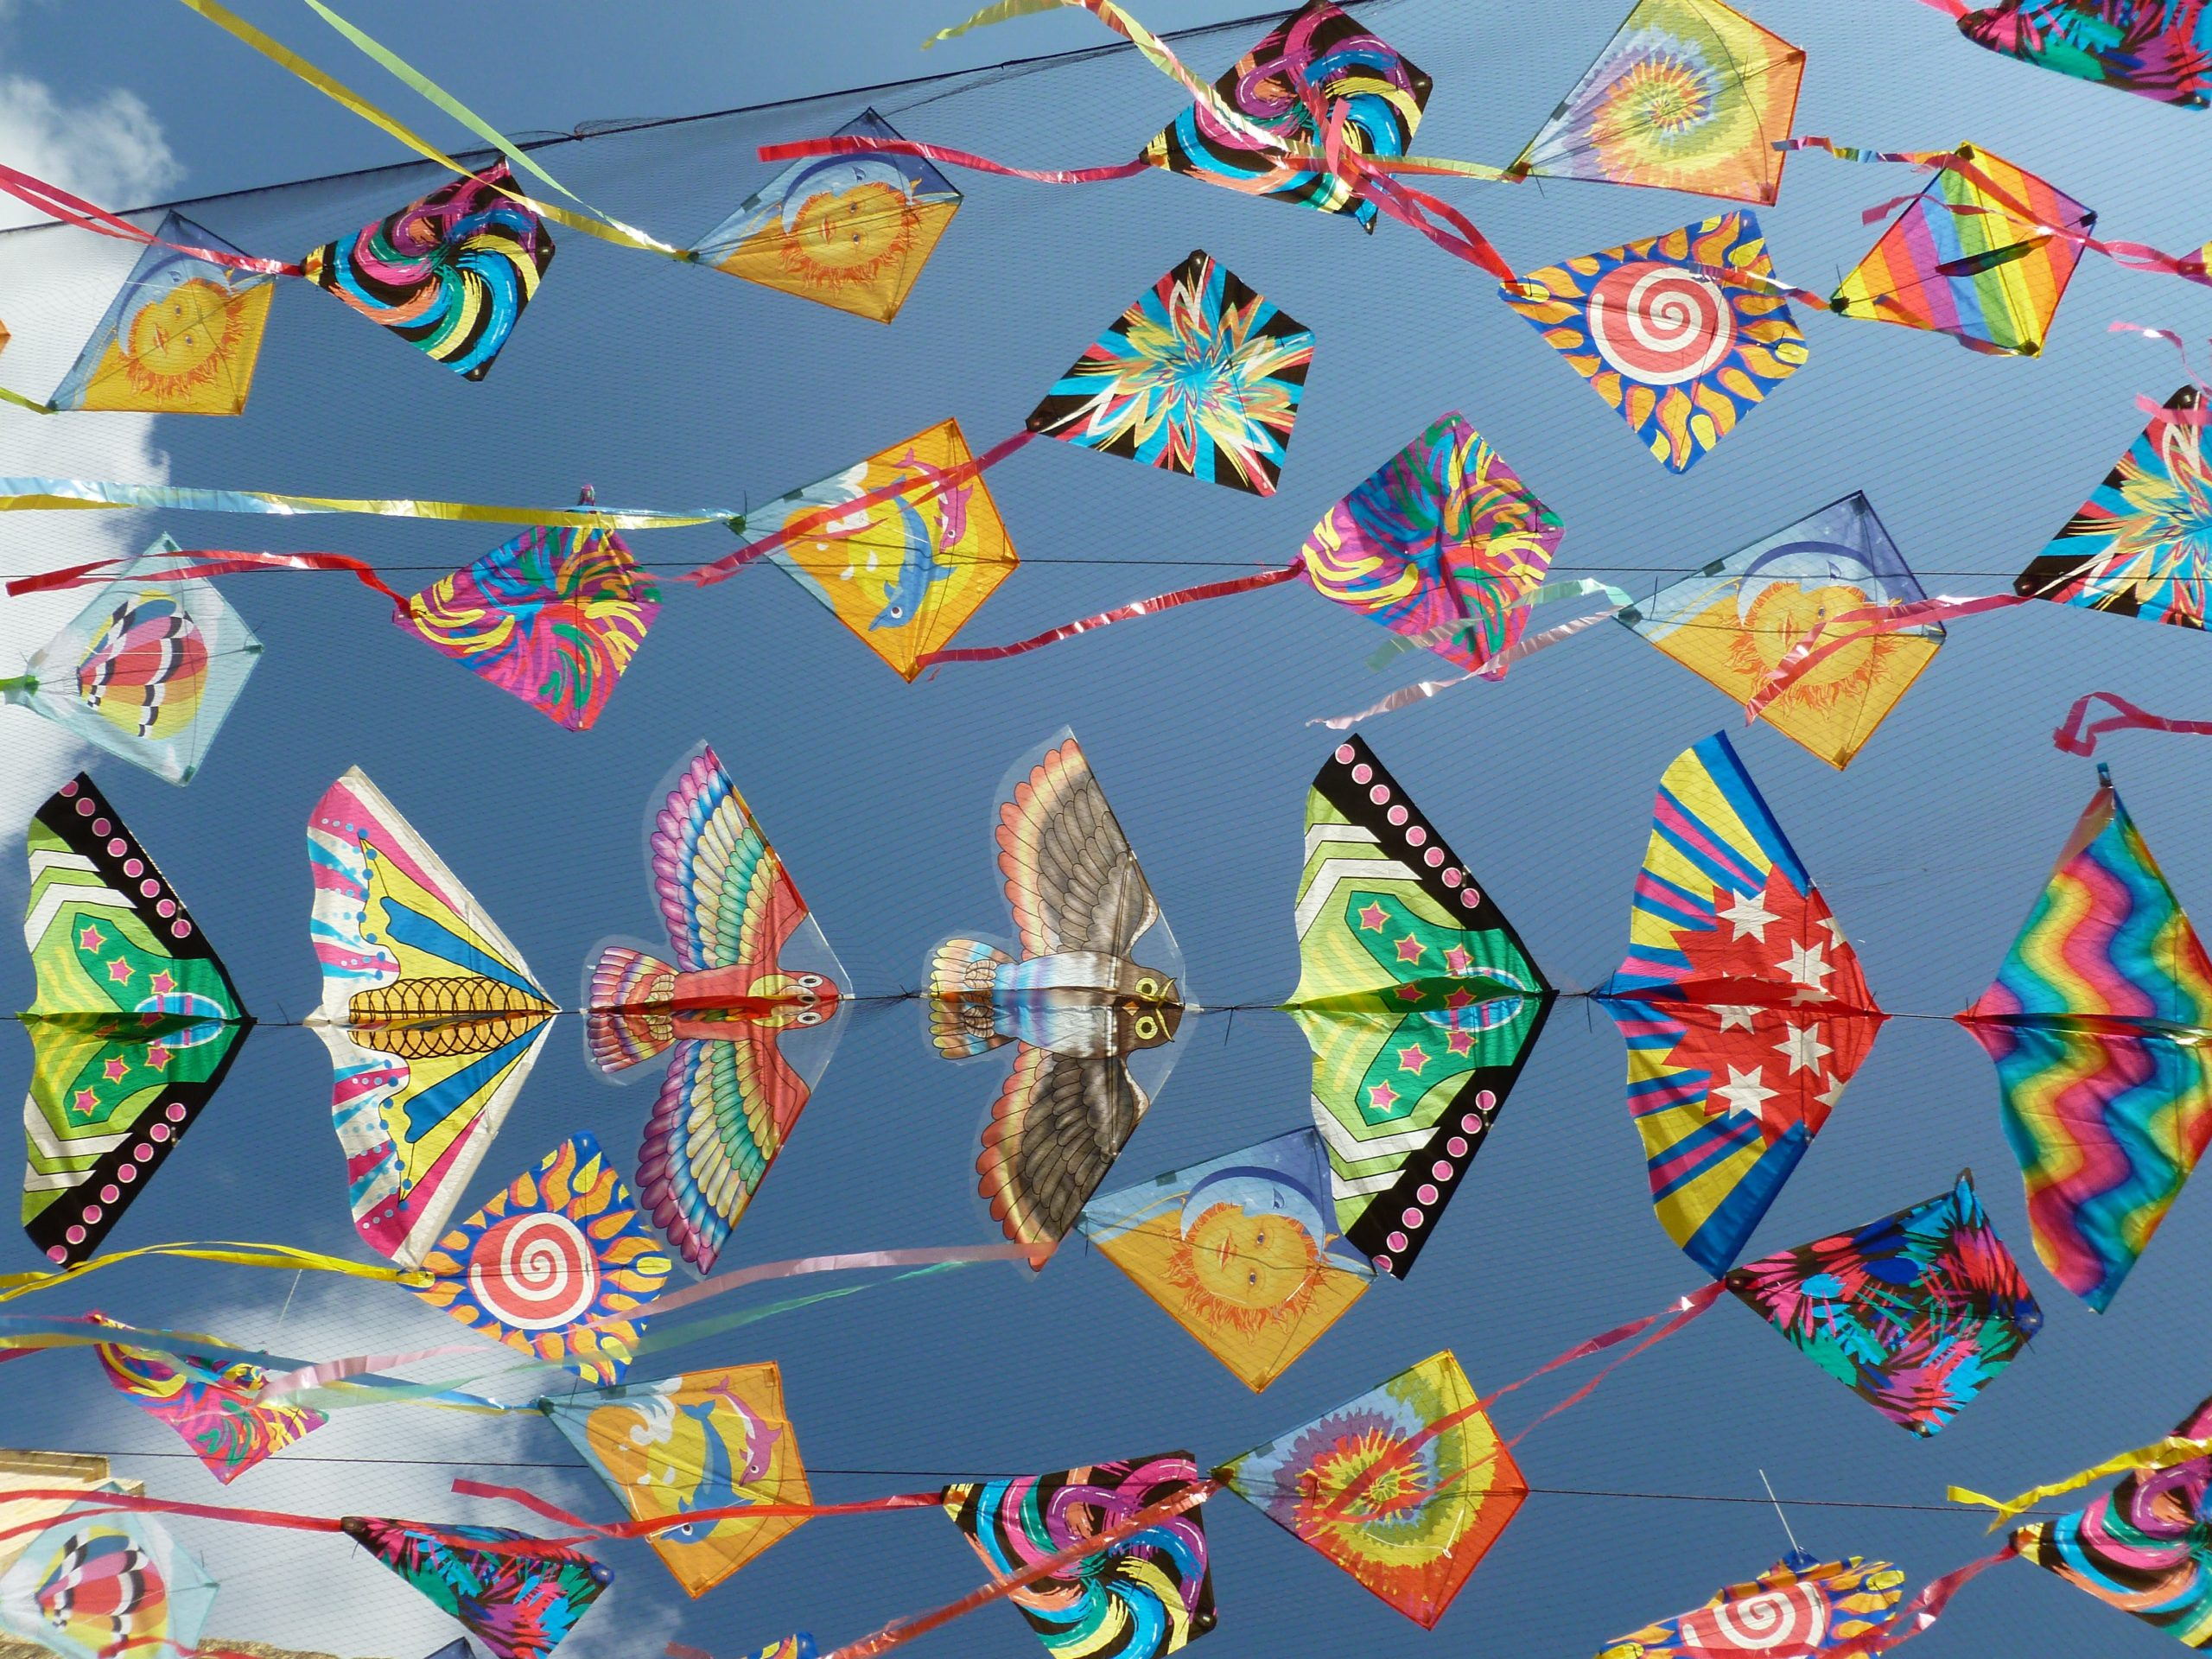 Several colorful kites fly in the air at Kites over Clarksburg